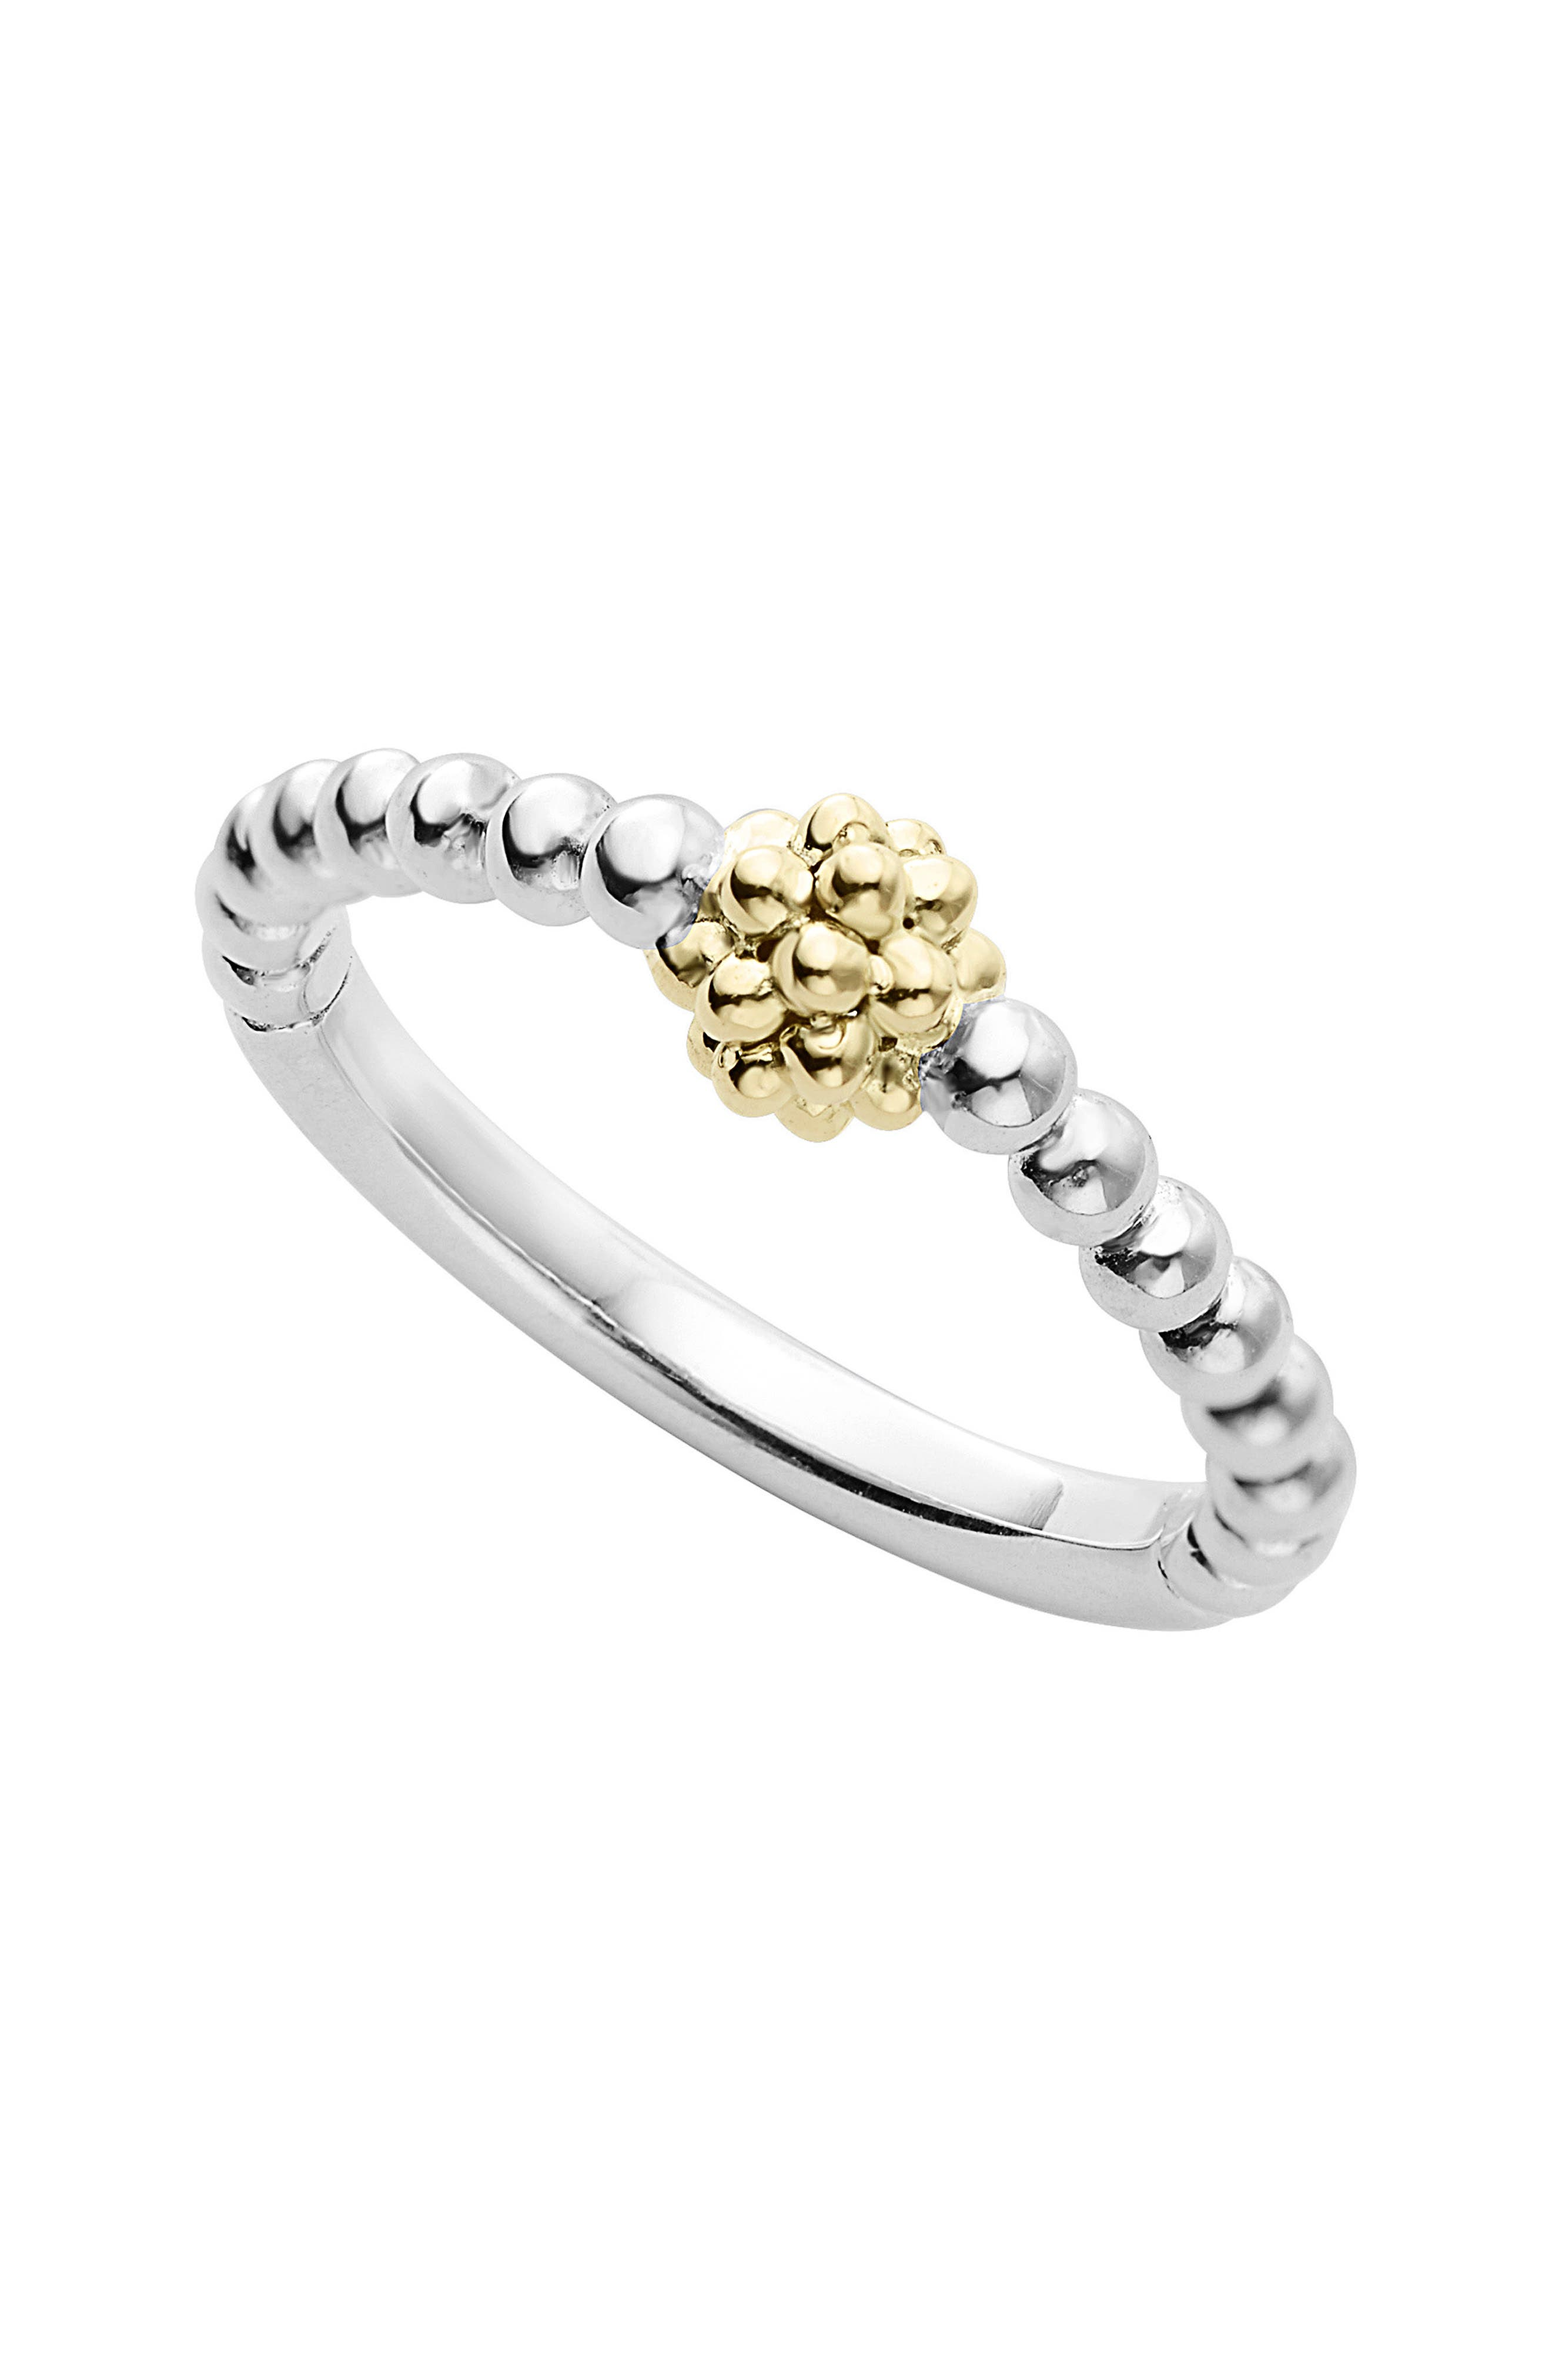 Caviar Icon Stacking Ring,                         Main,                         color, Silver/ Gold